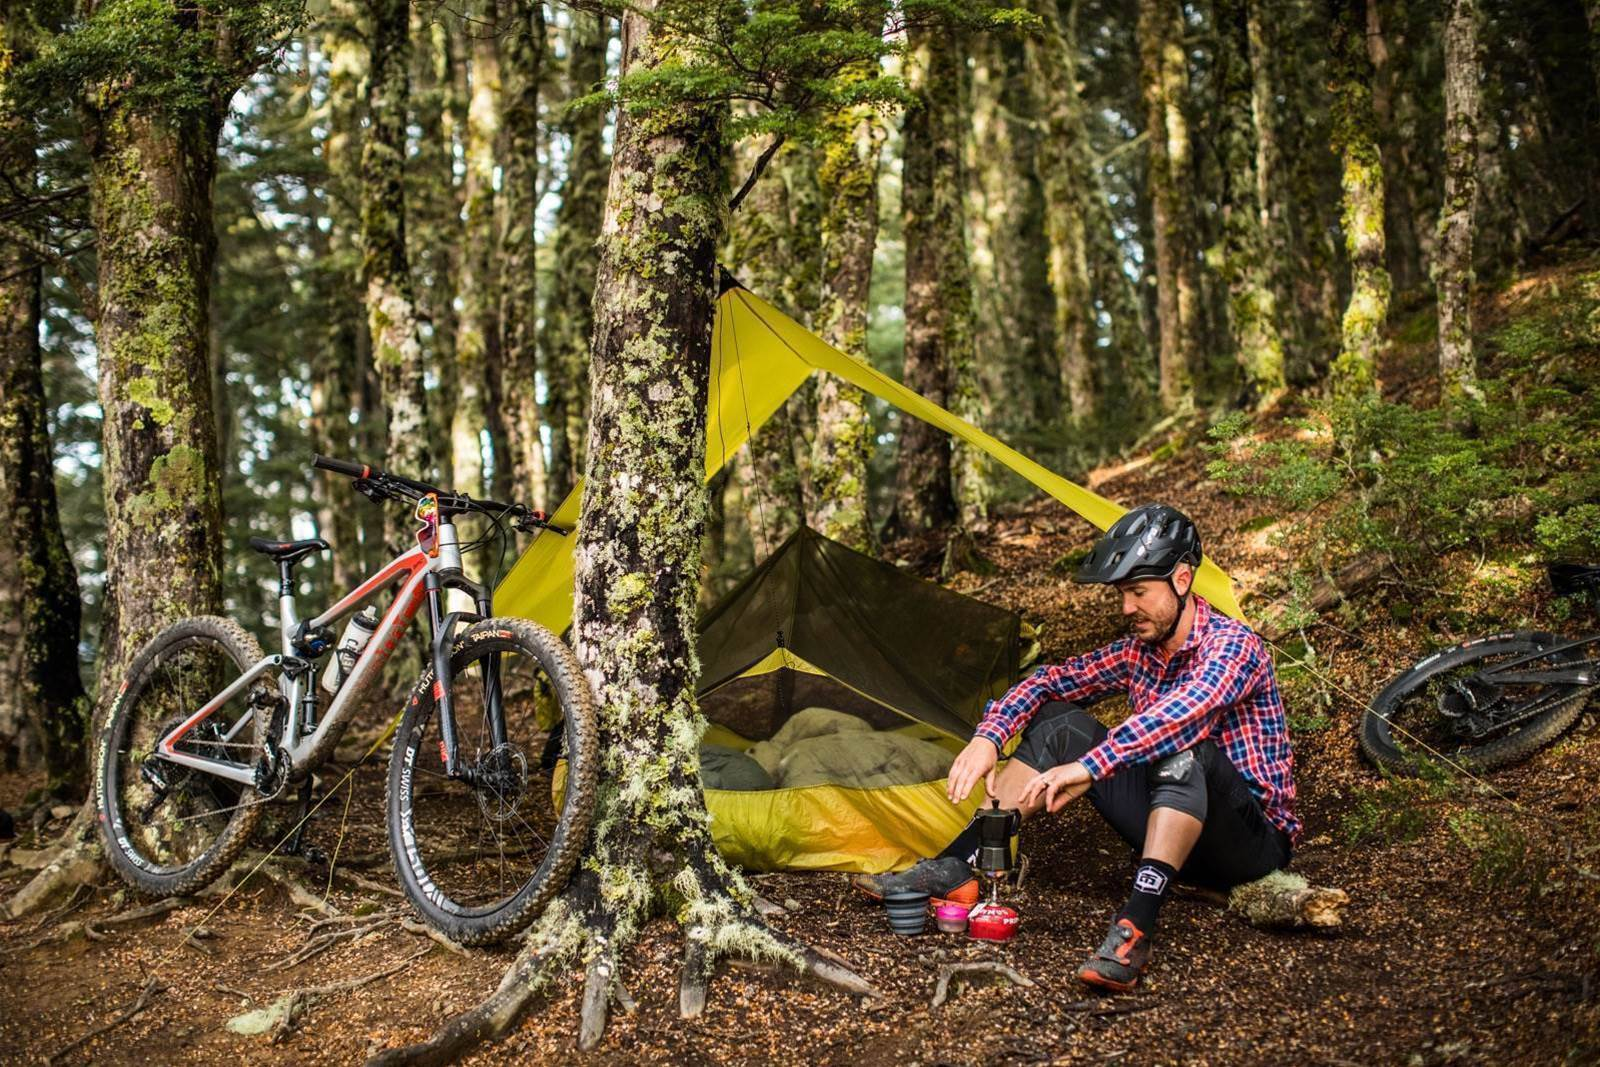 TESTED: Sea to Summit Bikepacking gear